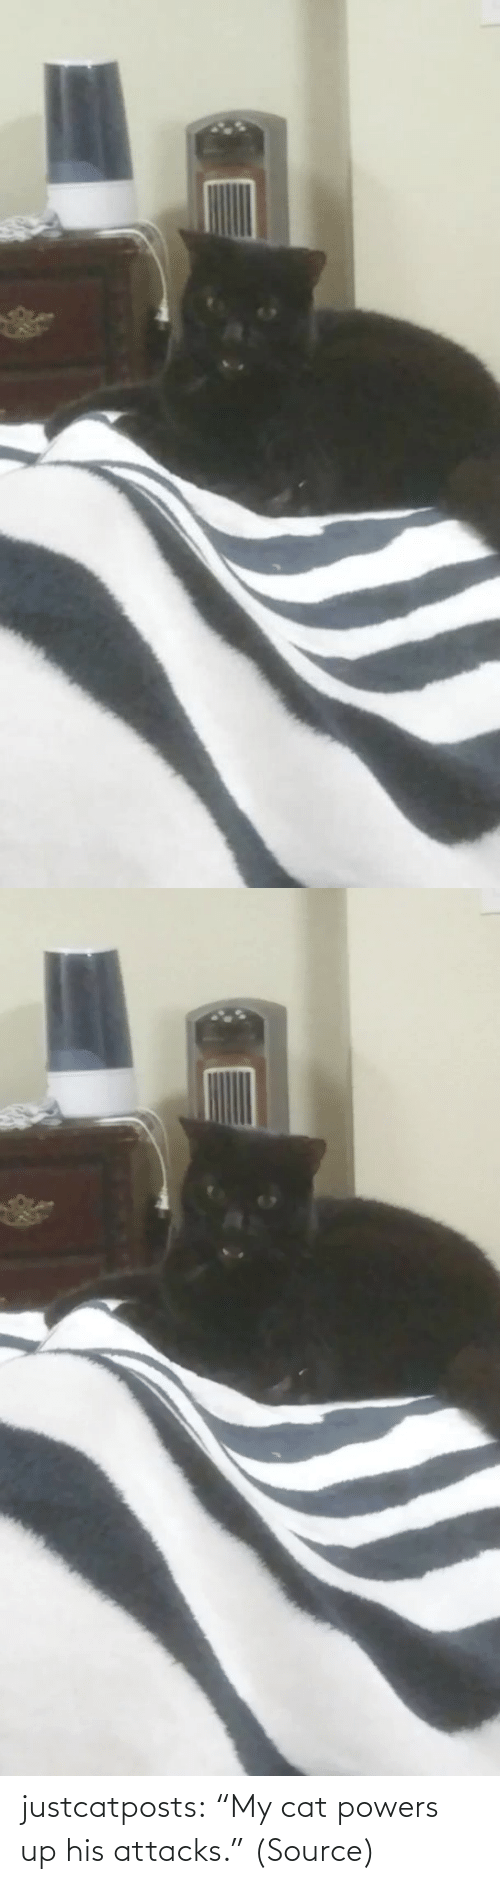 "Funny: justcatposts:  ""My cat powers up his attacks."" (Source)"